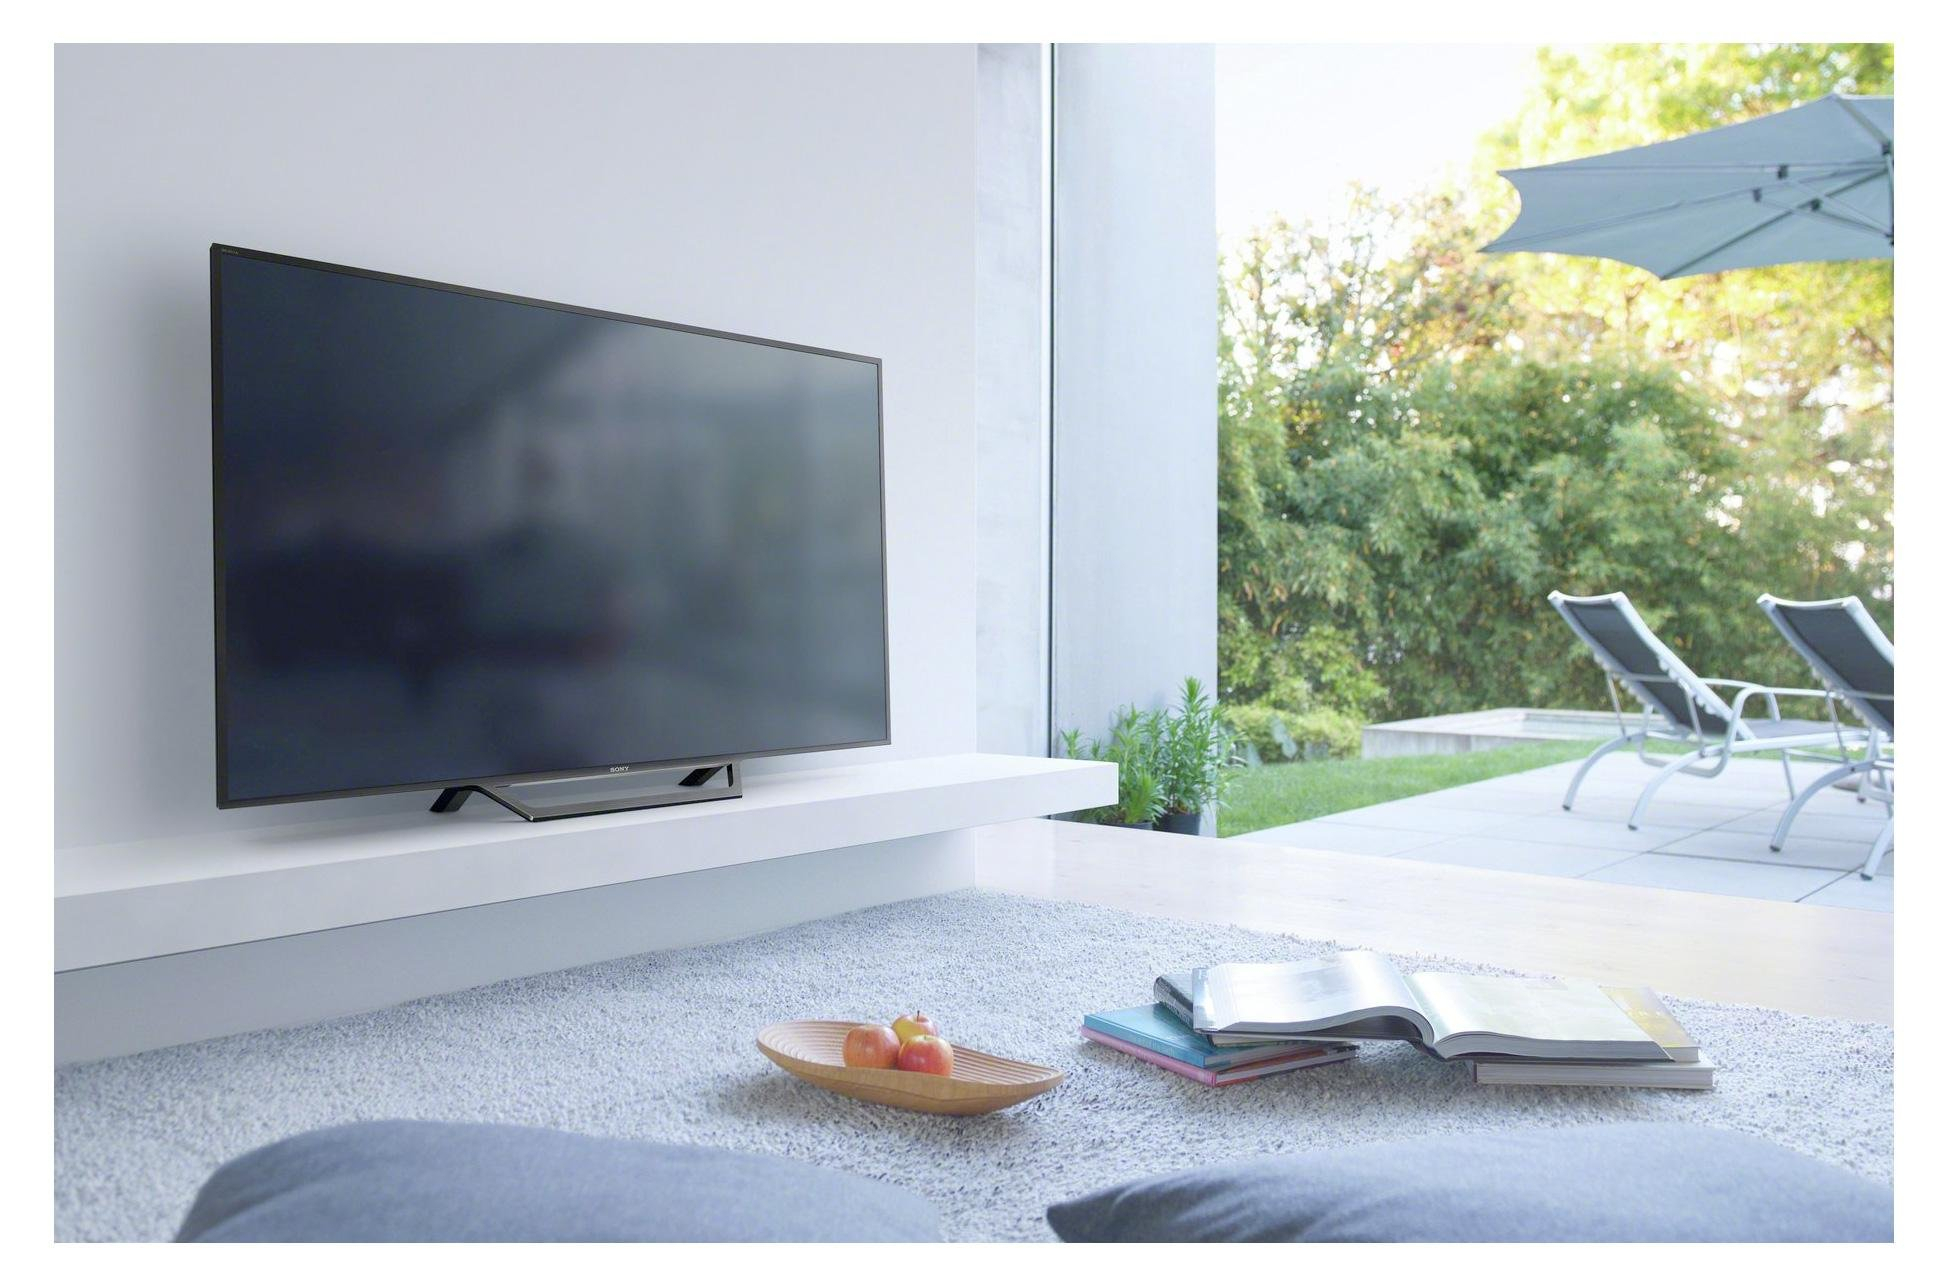 Sony Bravia Kdl48Wd653 | 48 Inch Smart Led Tv 1080P Hd Freeview Hd Regarding Wakefield 85 Inch Tv Stands (View 30 of 30)